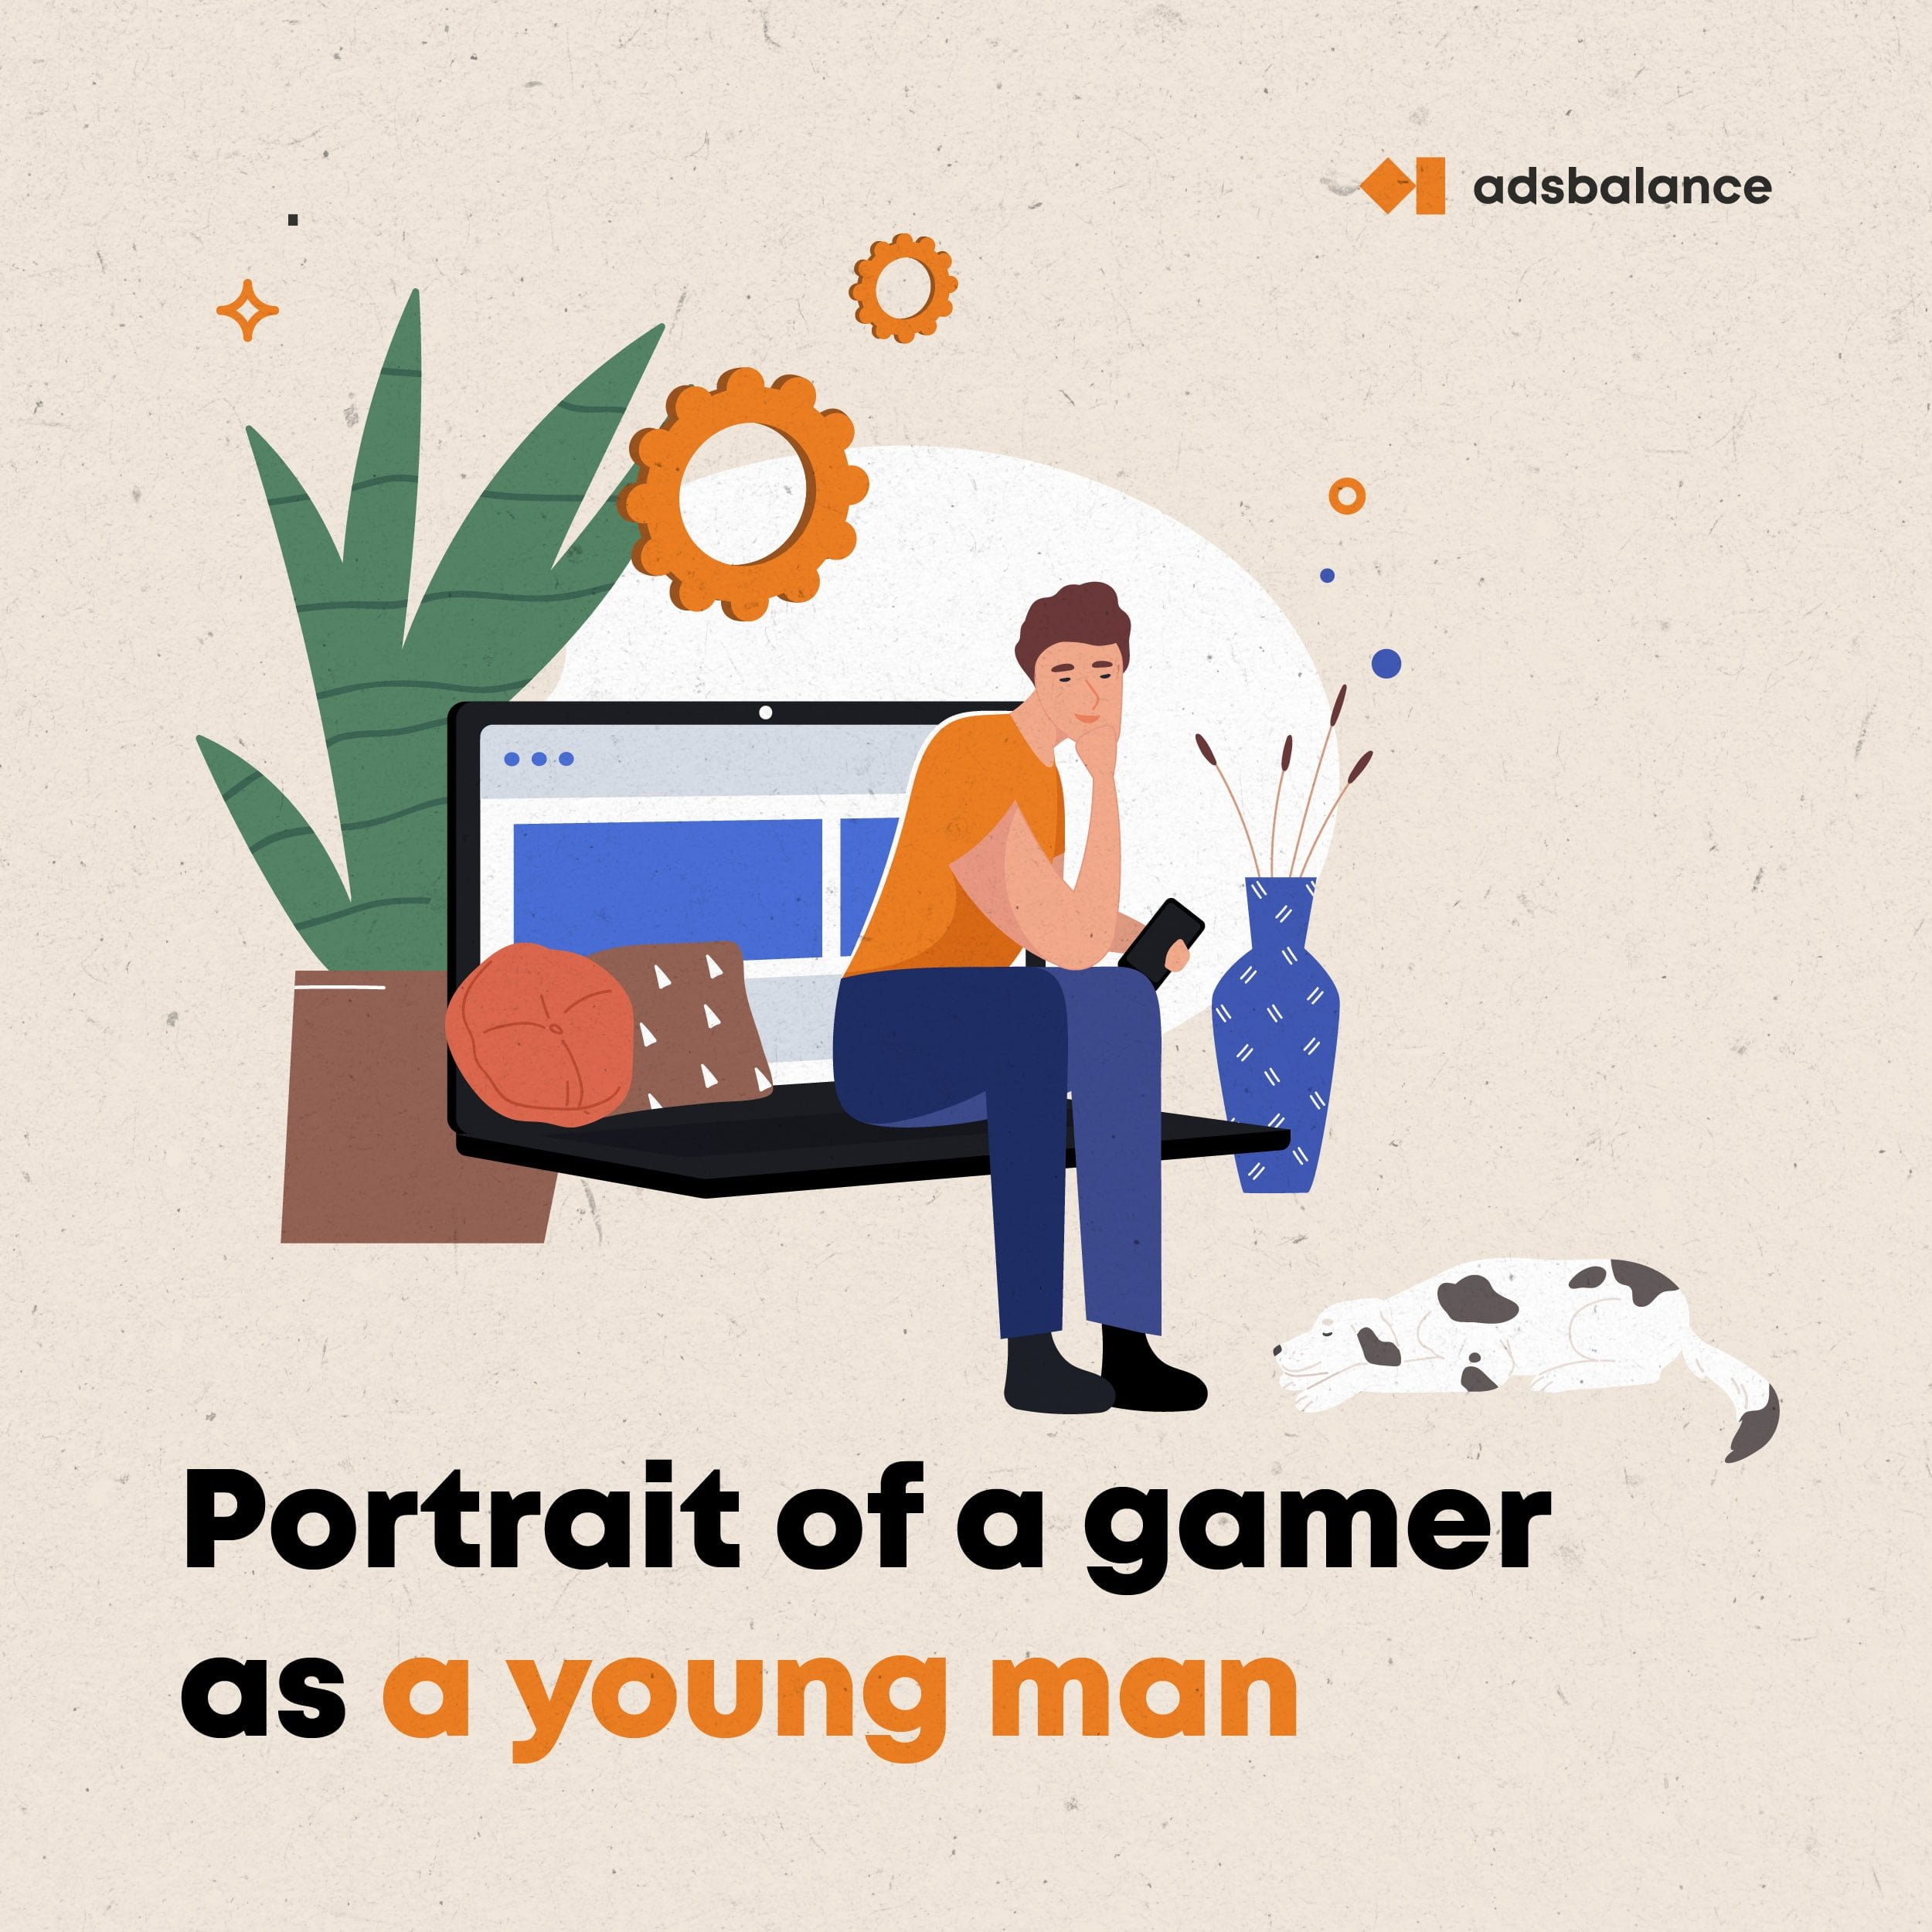 A portrait of a gamer as a young man